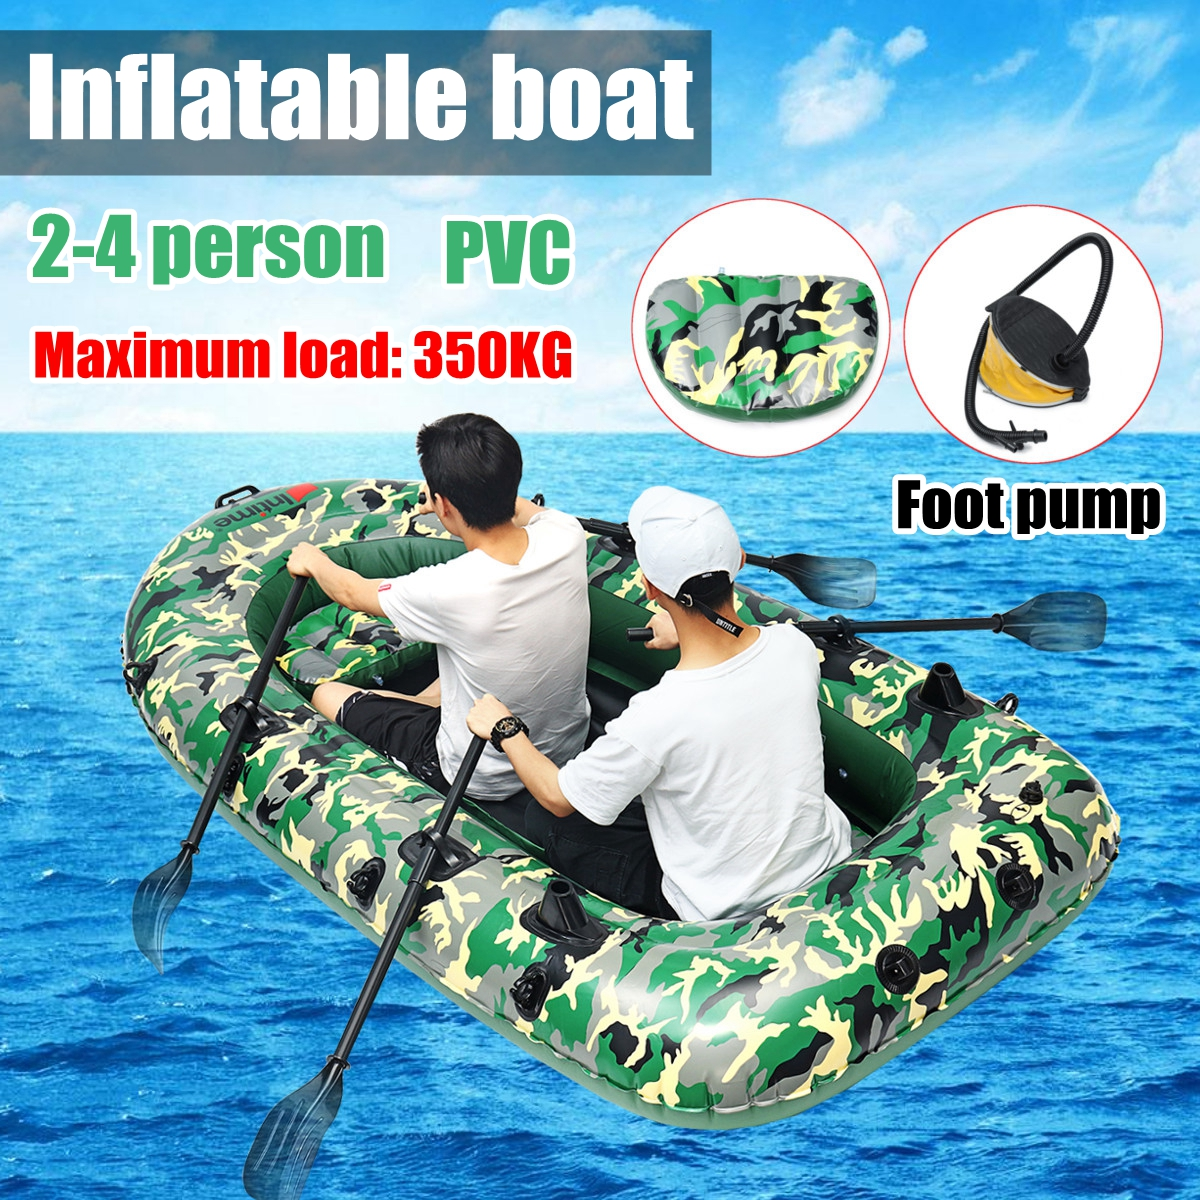 Sports fishman 2/3/4 Person PVC thick inflatable boat fishing inflatable kayak paddle pump dinghy air raft Rowing Boats 3 person angling boat drifting dinghy inflatable boat dinghy thickened hovercraft kayak pvc fishing boat assault